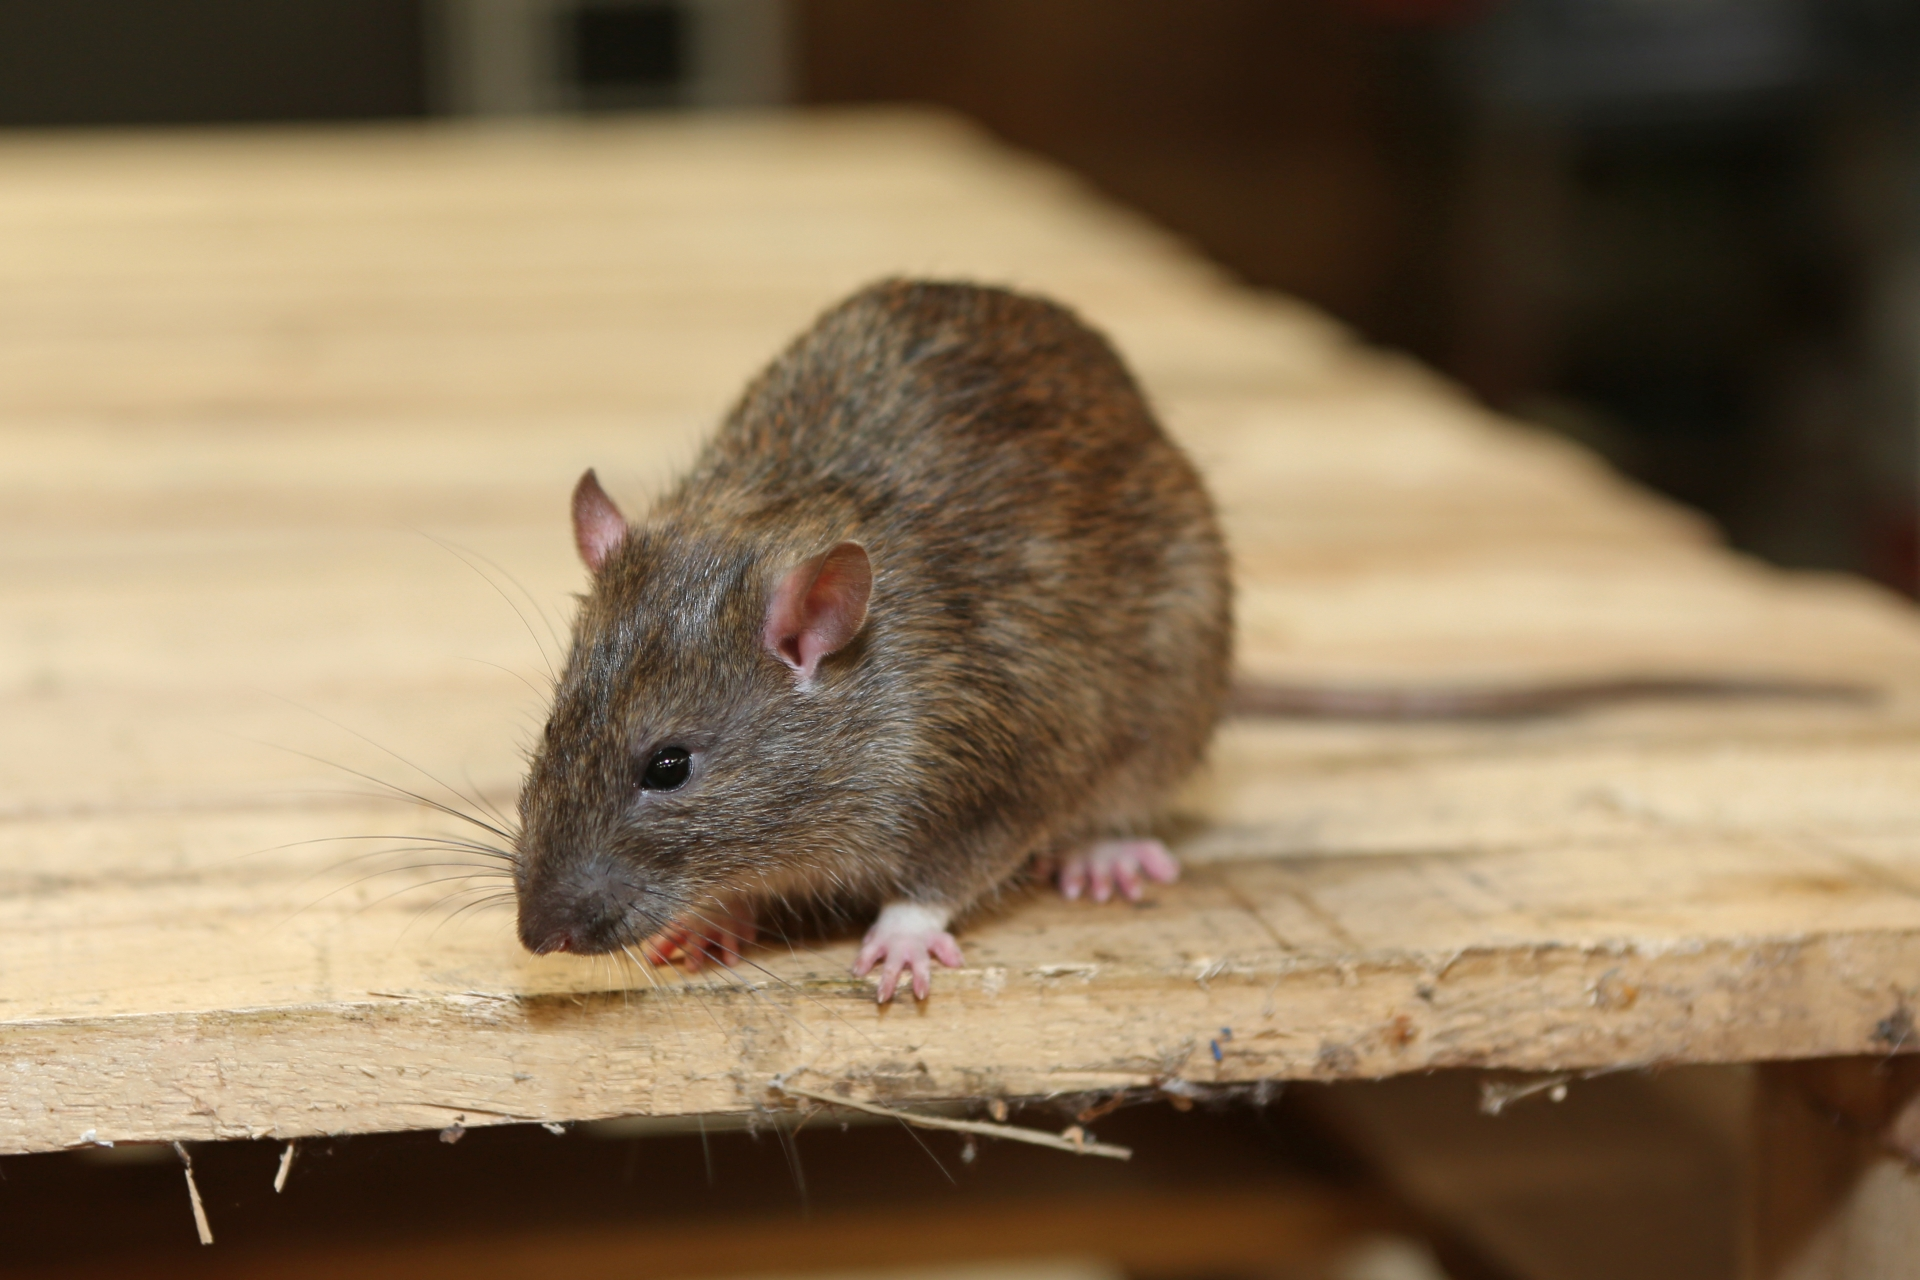 Rat Infestation, Pest Control in West Horsley, East Horsley, Effingham, KT24. Call Now 020 8166 9746